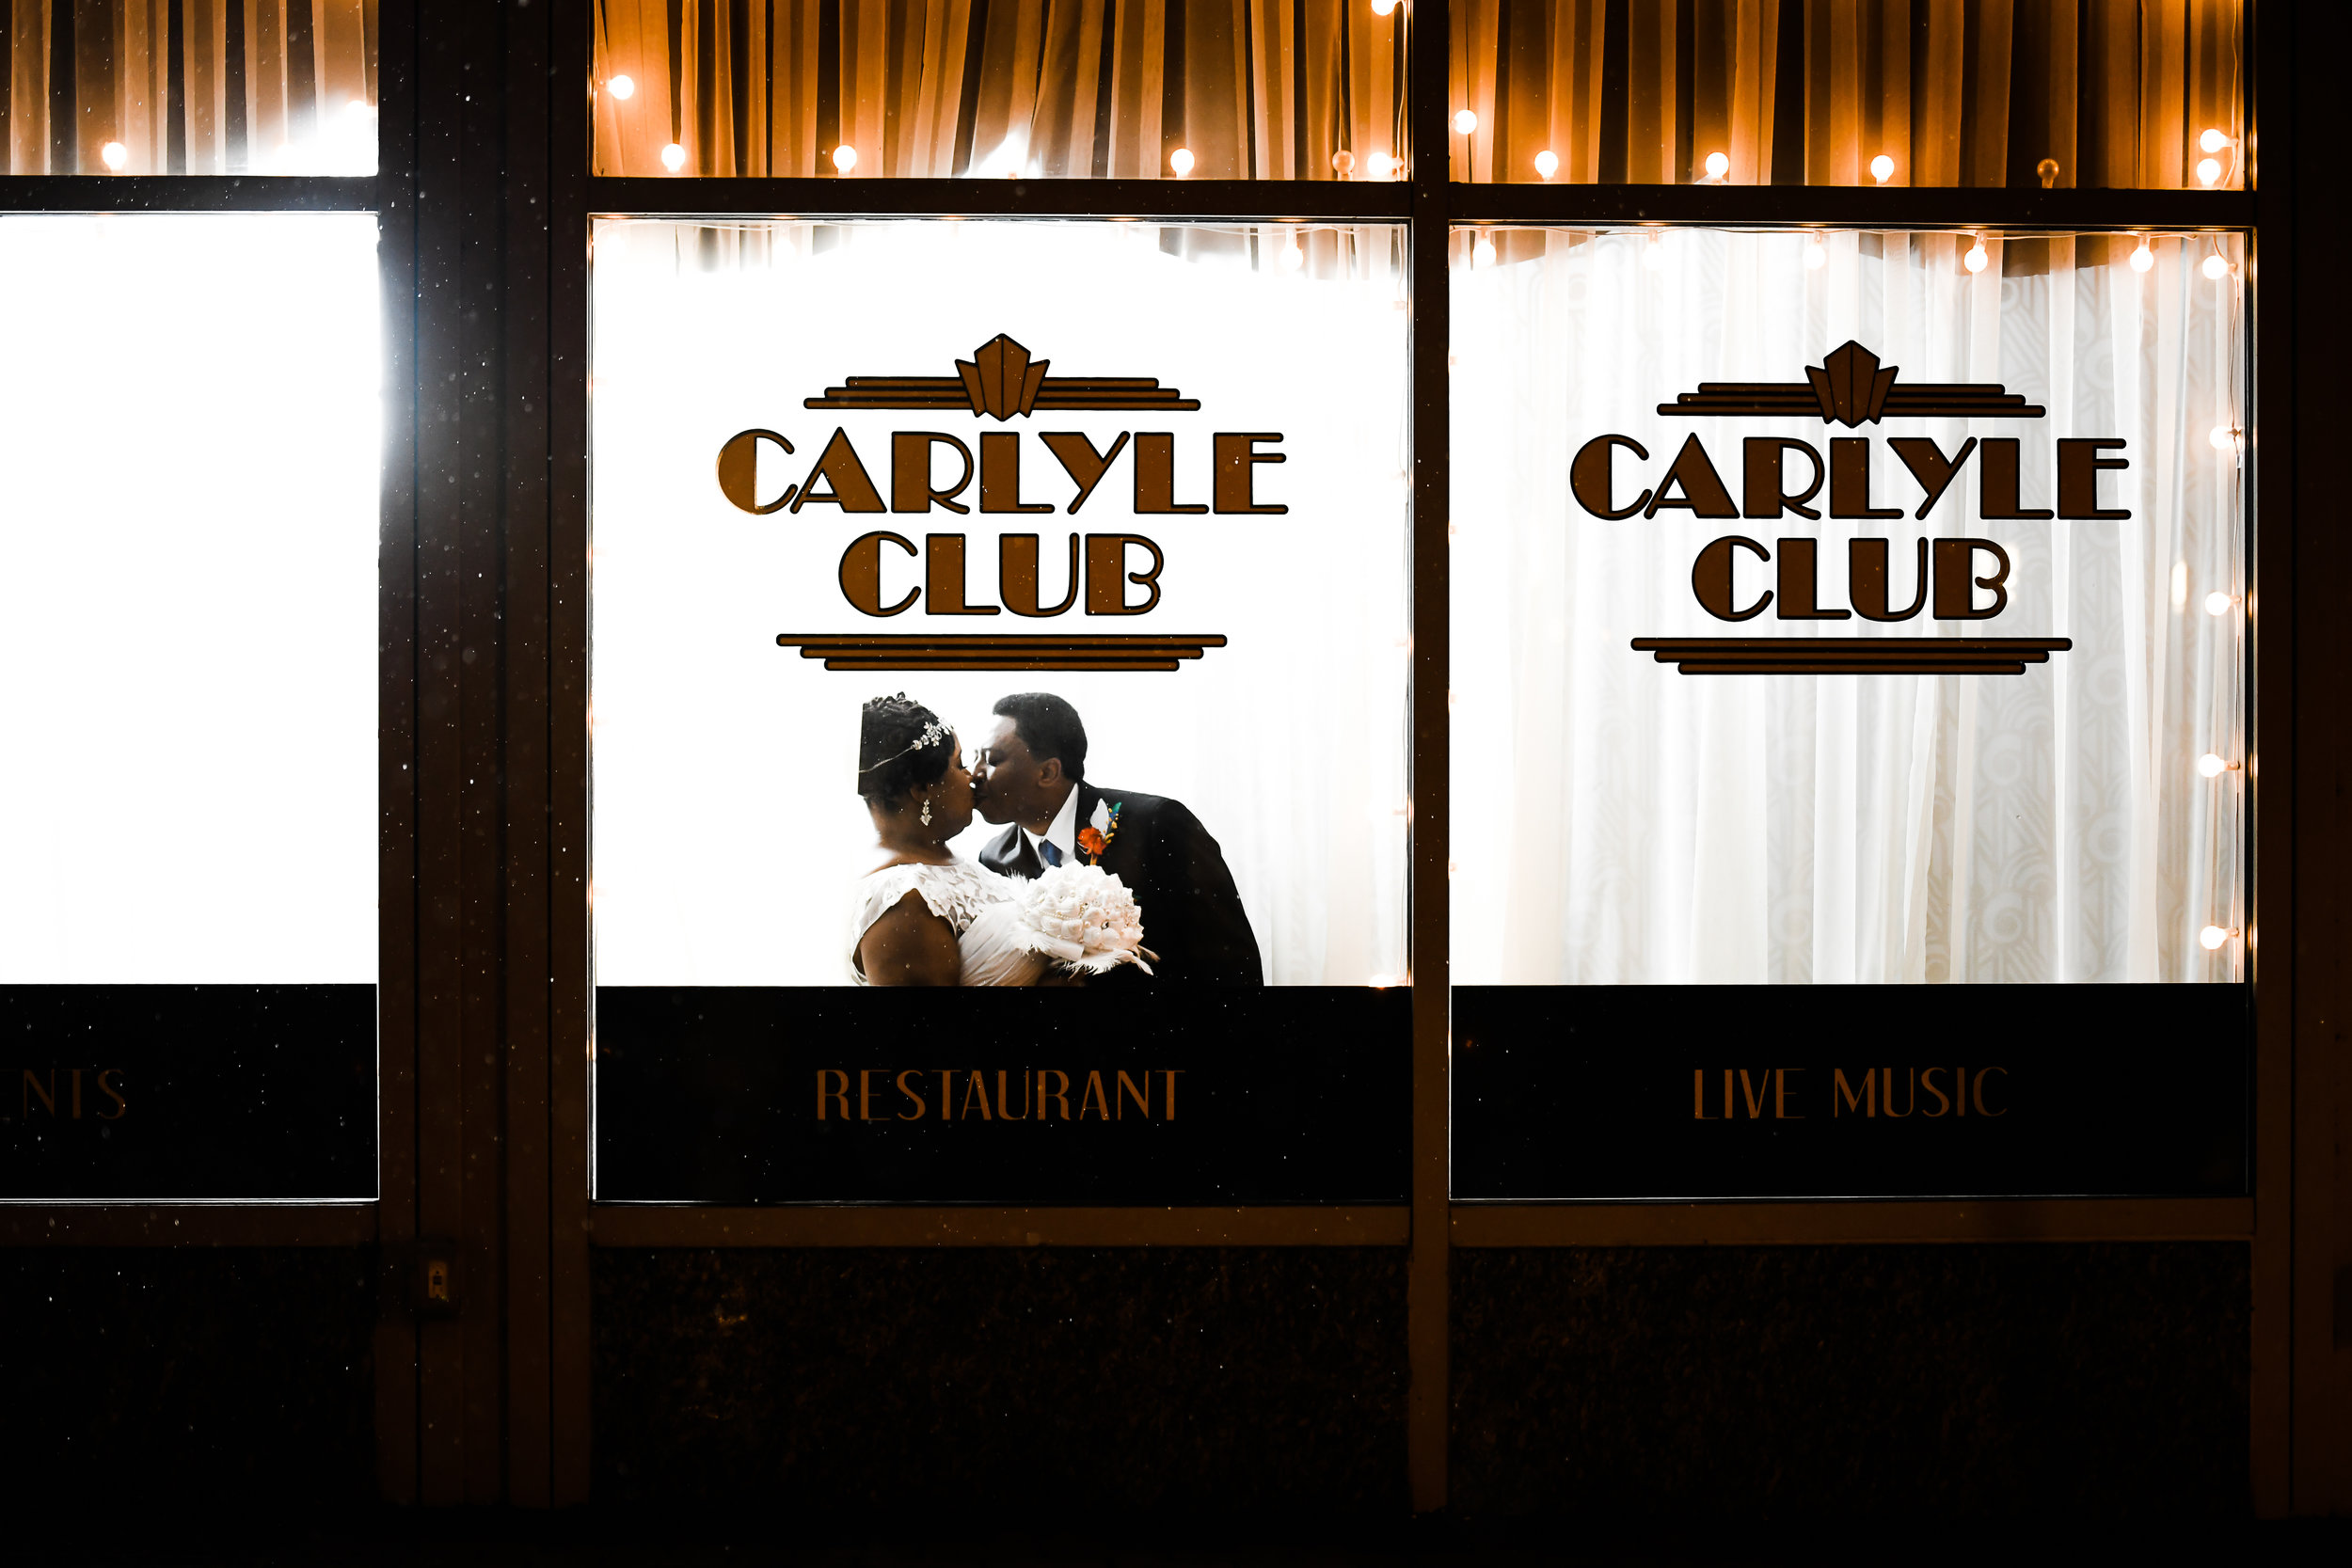 Wedding photographer at the Carlyle Club in VA